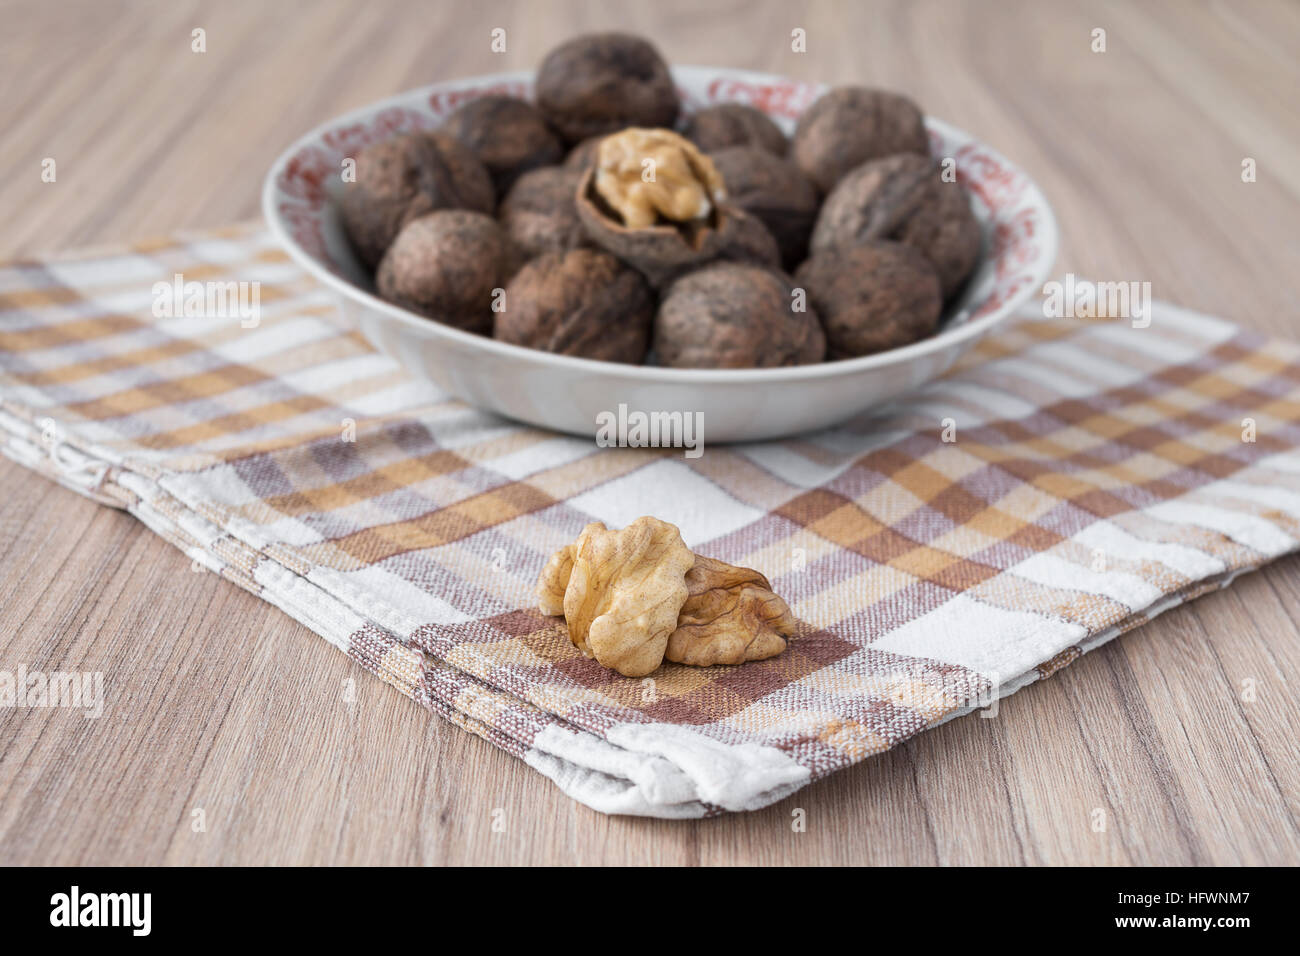 Whole walnuts and walnut kernels in white plate on table with checkered tablecloth - Stock Image